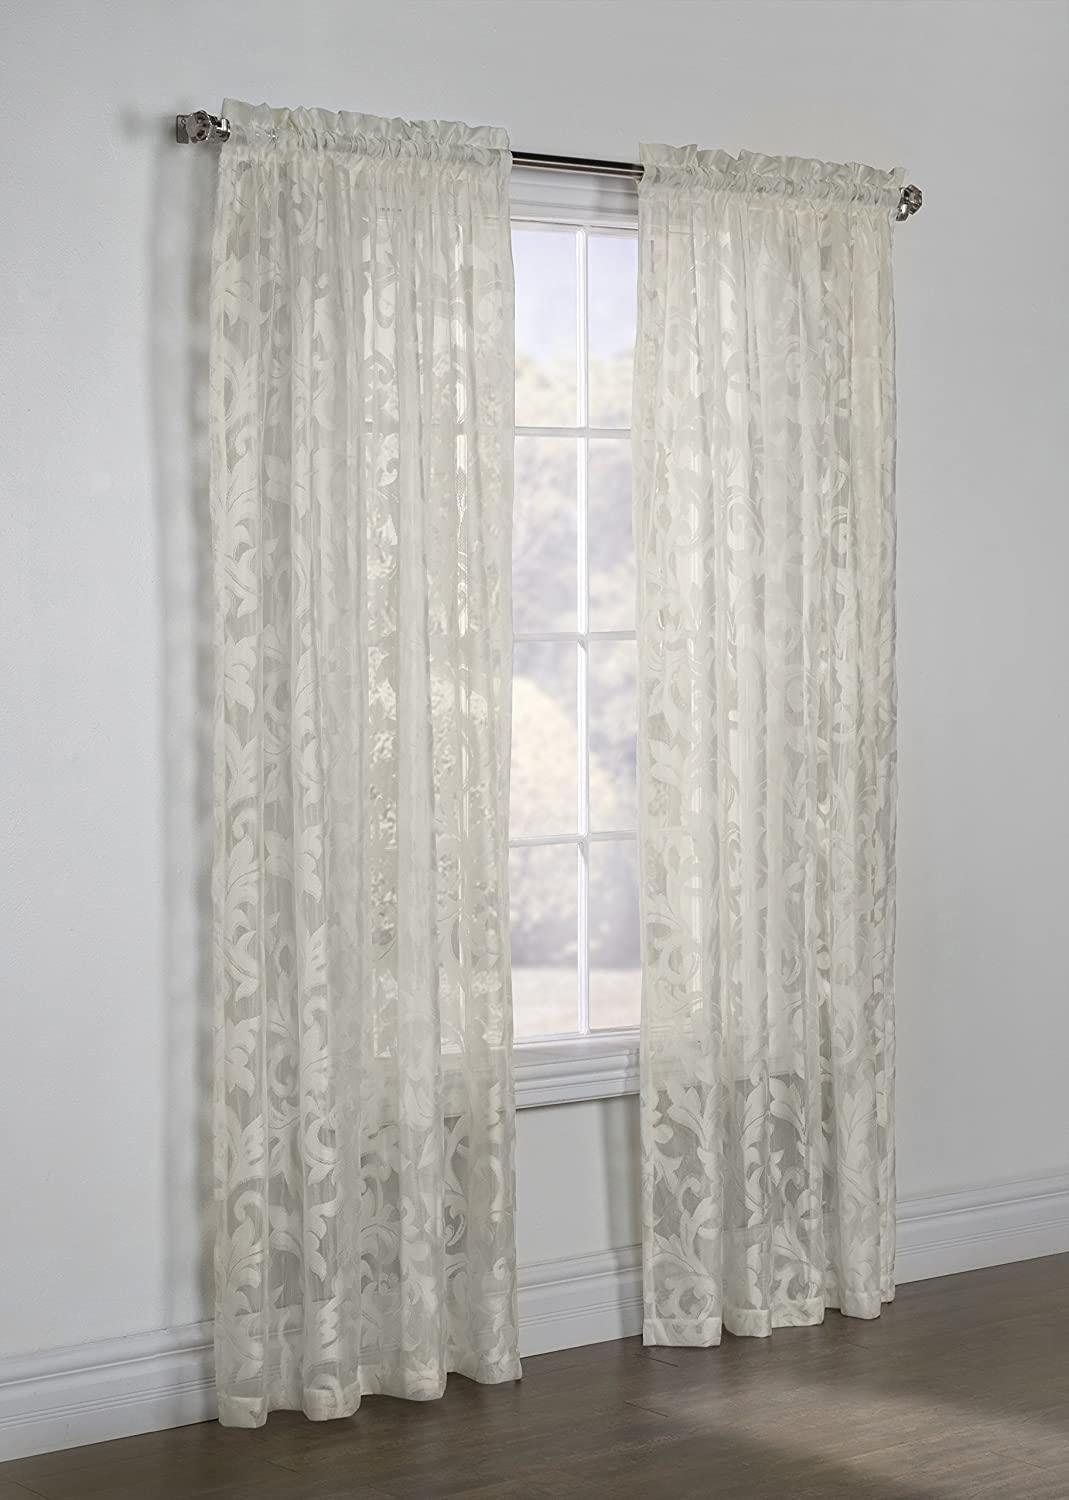 Common Wealth Home Fashions Jacqueline Habitat Tailored Lace Curtain Panel, 50 x 95, Eggshell